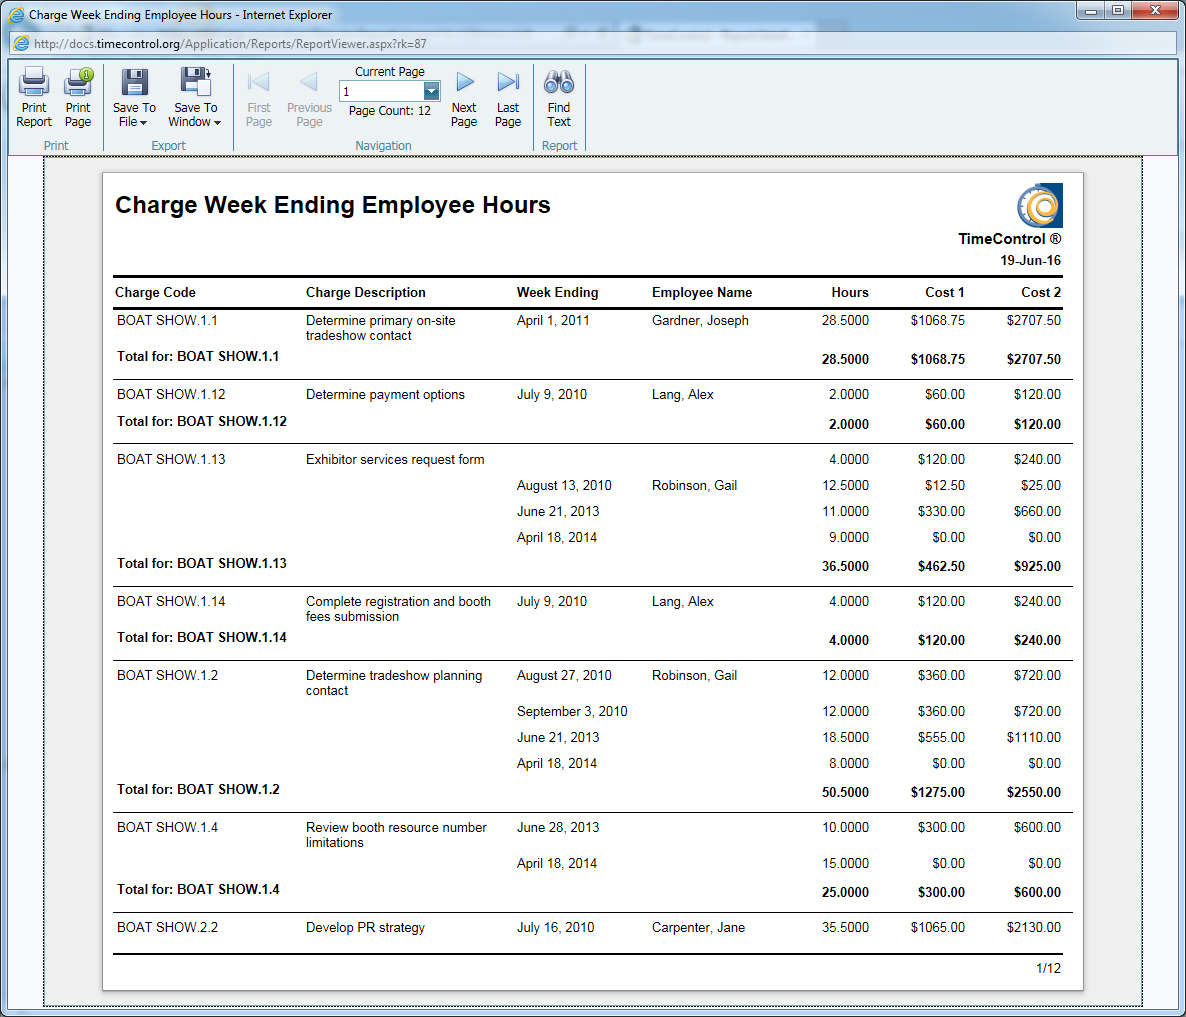 TimeControl Report Charge / Week Ending / Employee Hours Report